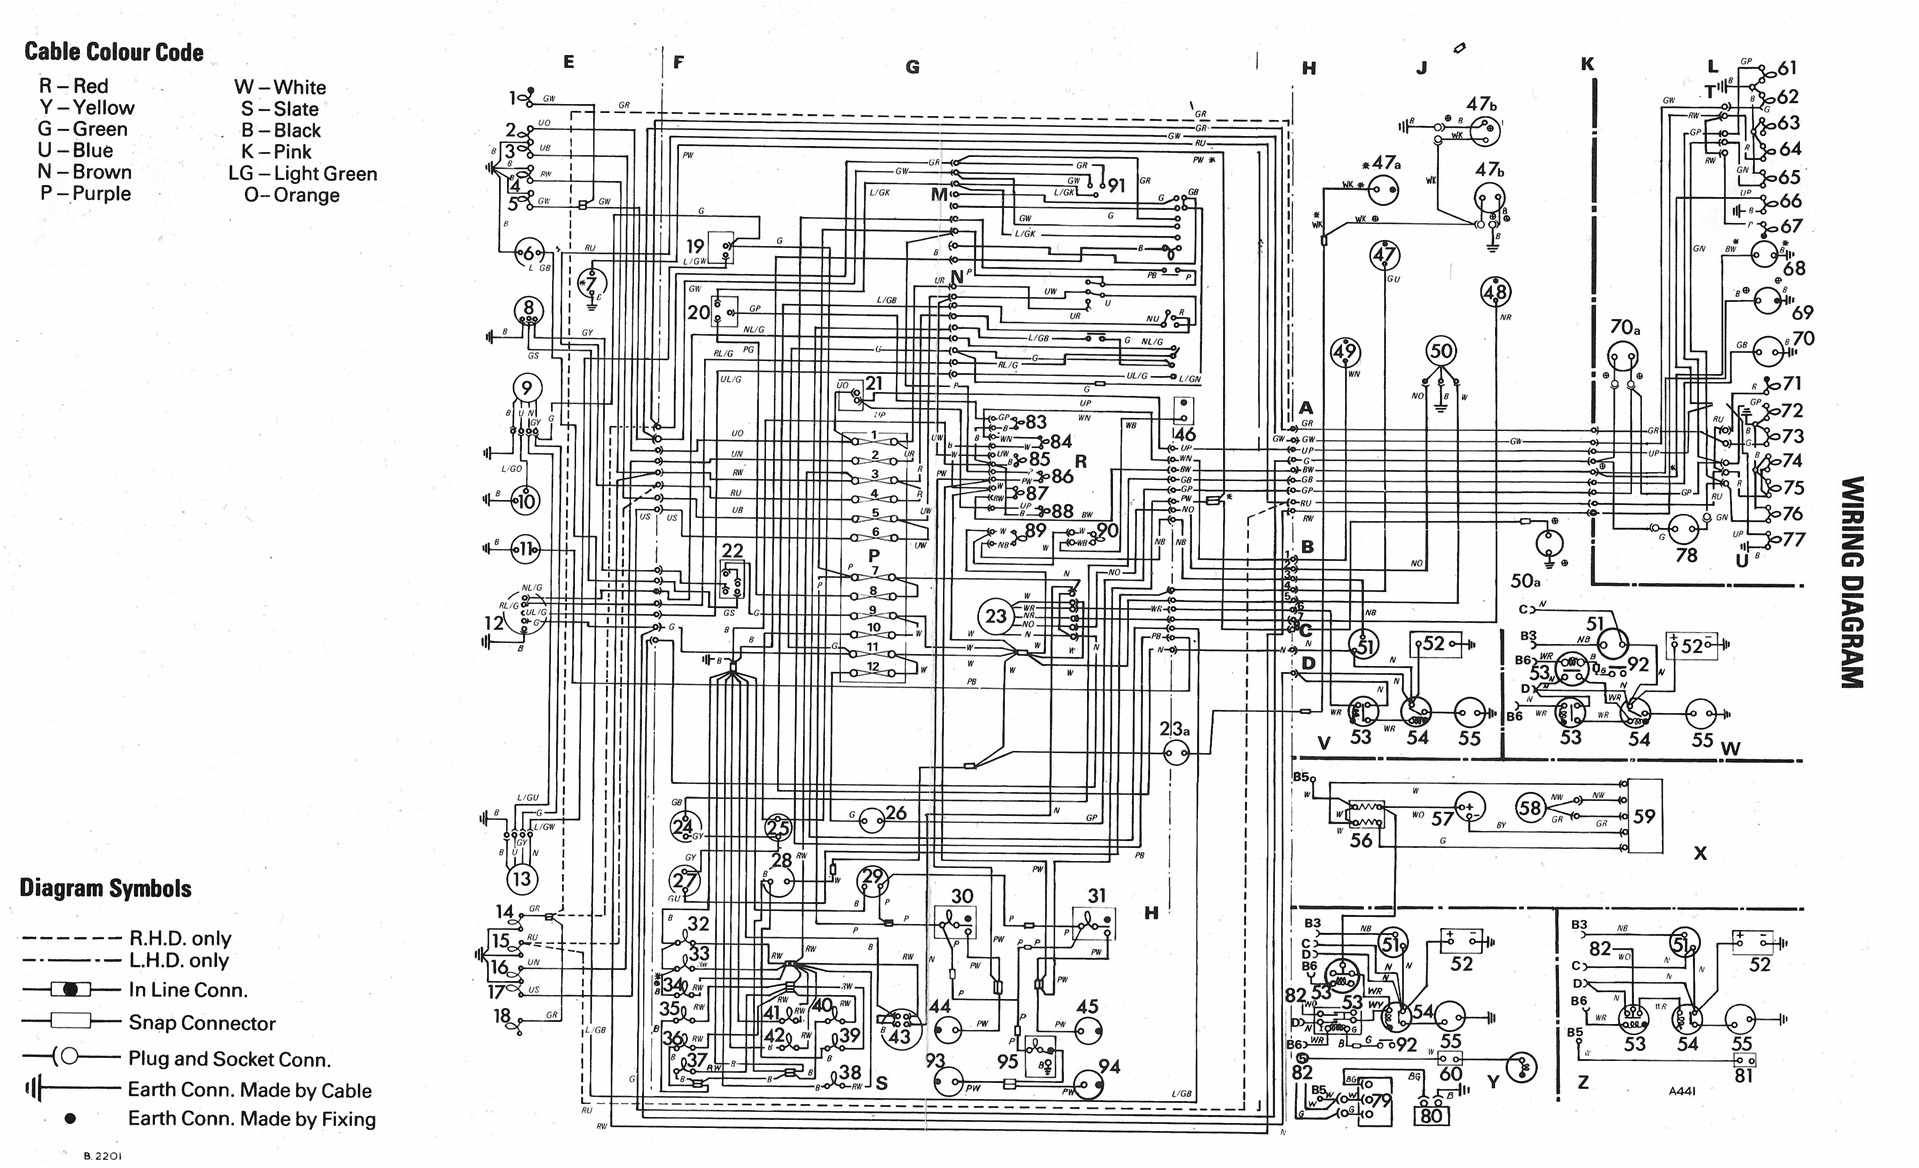 electrical wiring diagram of volkswagen golf mk1 projekt 1974 VW Engine  Diagram VW Bug Engine Removal